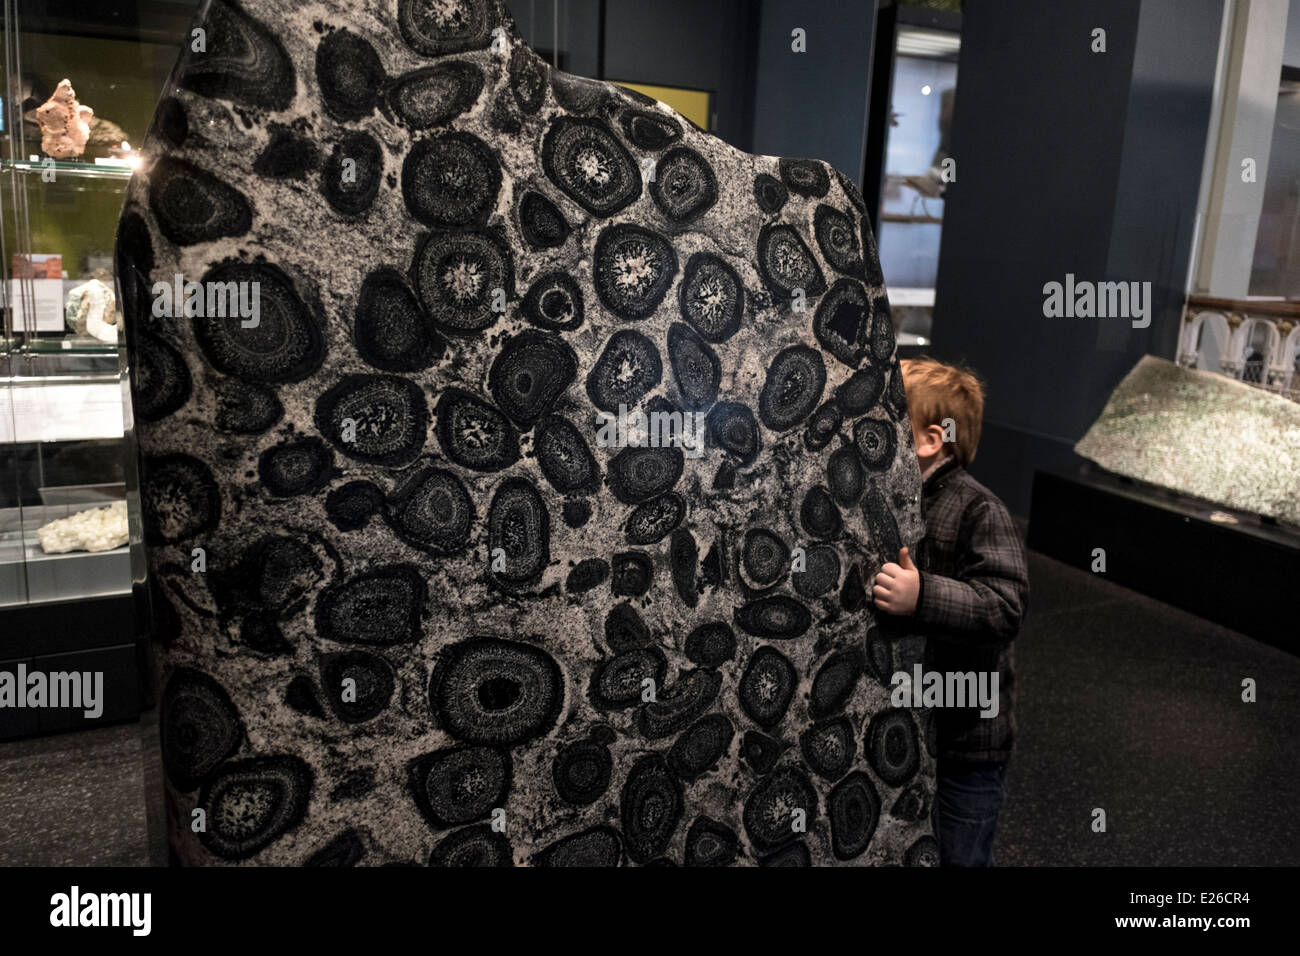 National Museum of Scotland, Edinburgh, Scotland - Stock Image